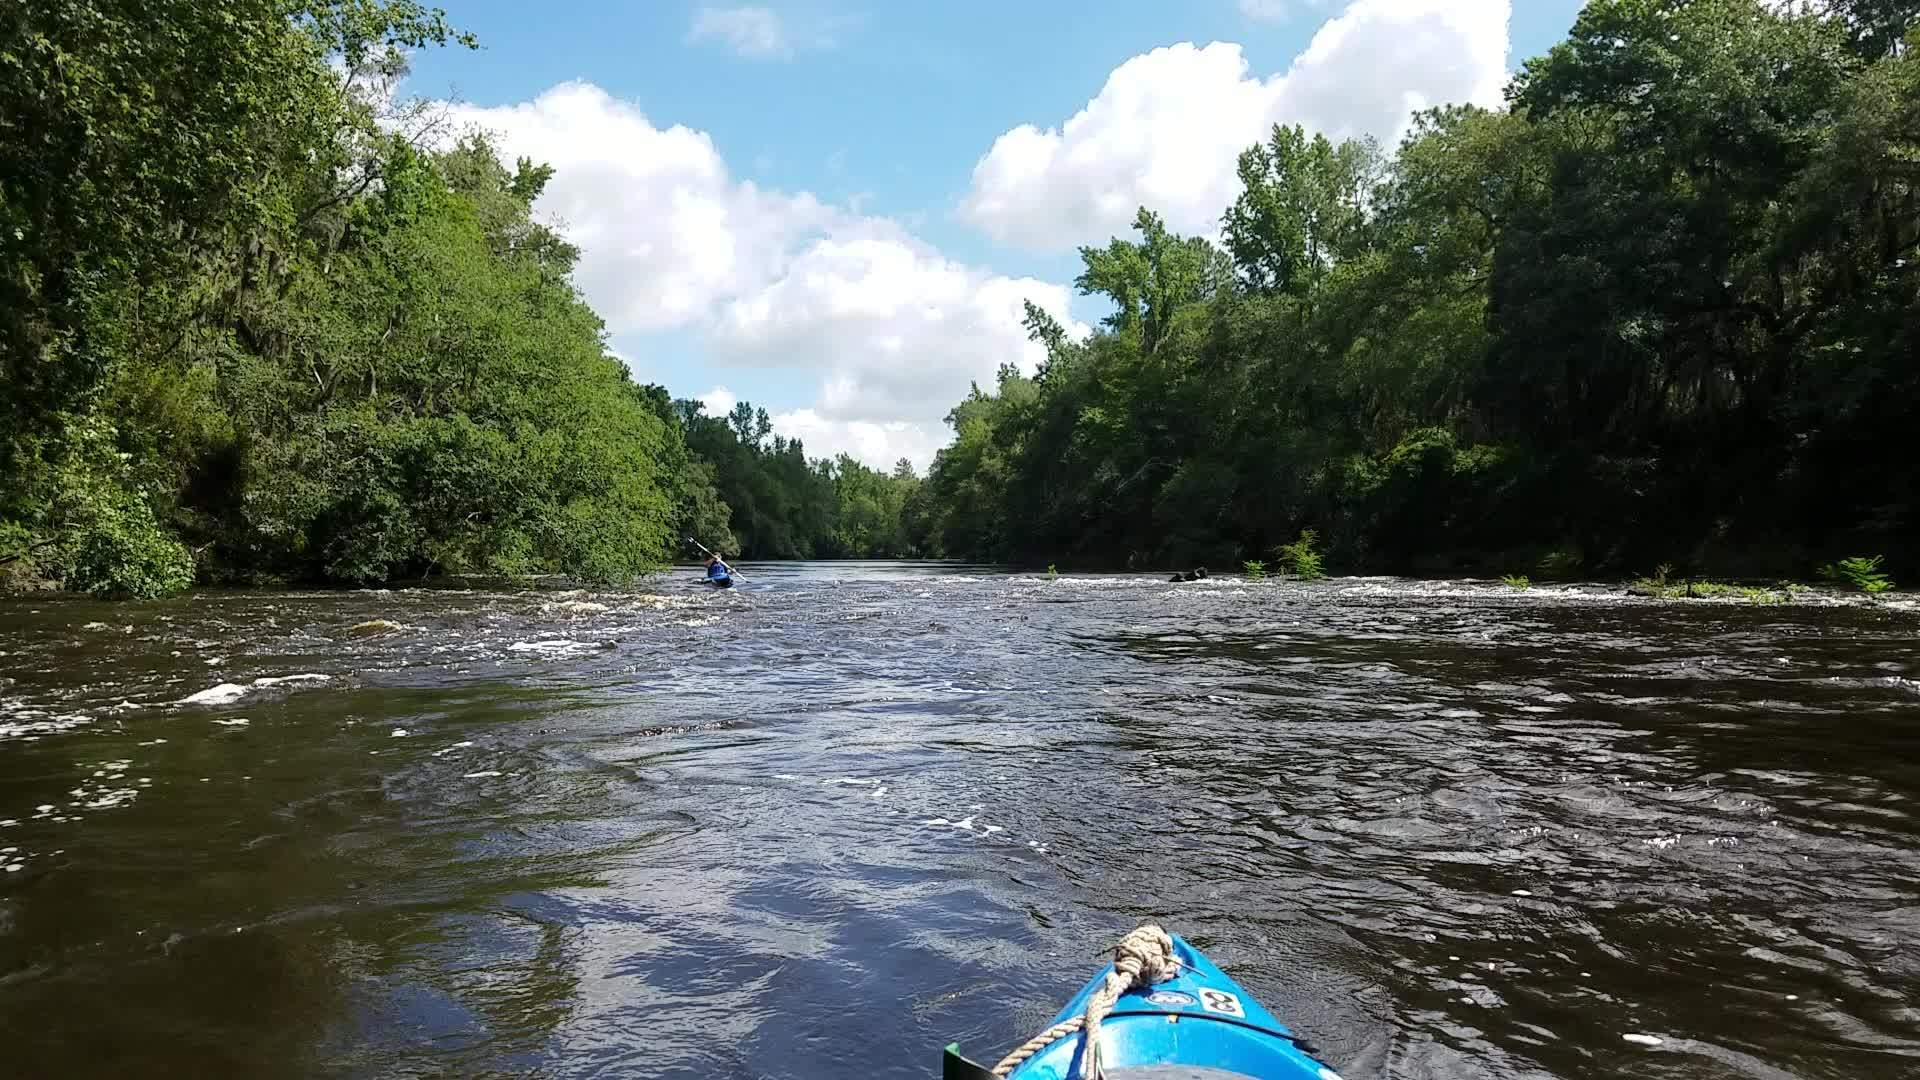 1920x1080 Movie: Tom Potter shoots some rapids (51M), 30.58135, -83.26283, in A fine day on the Withlacoochee River from Sullivan Landing to Madison Blue Spring, by John S. Quarterman, for WWALS.net, 24 June 2017